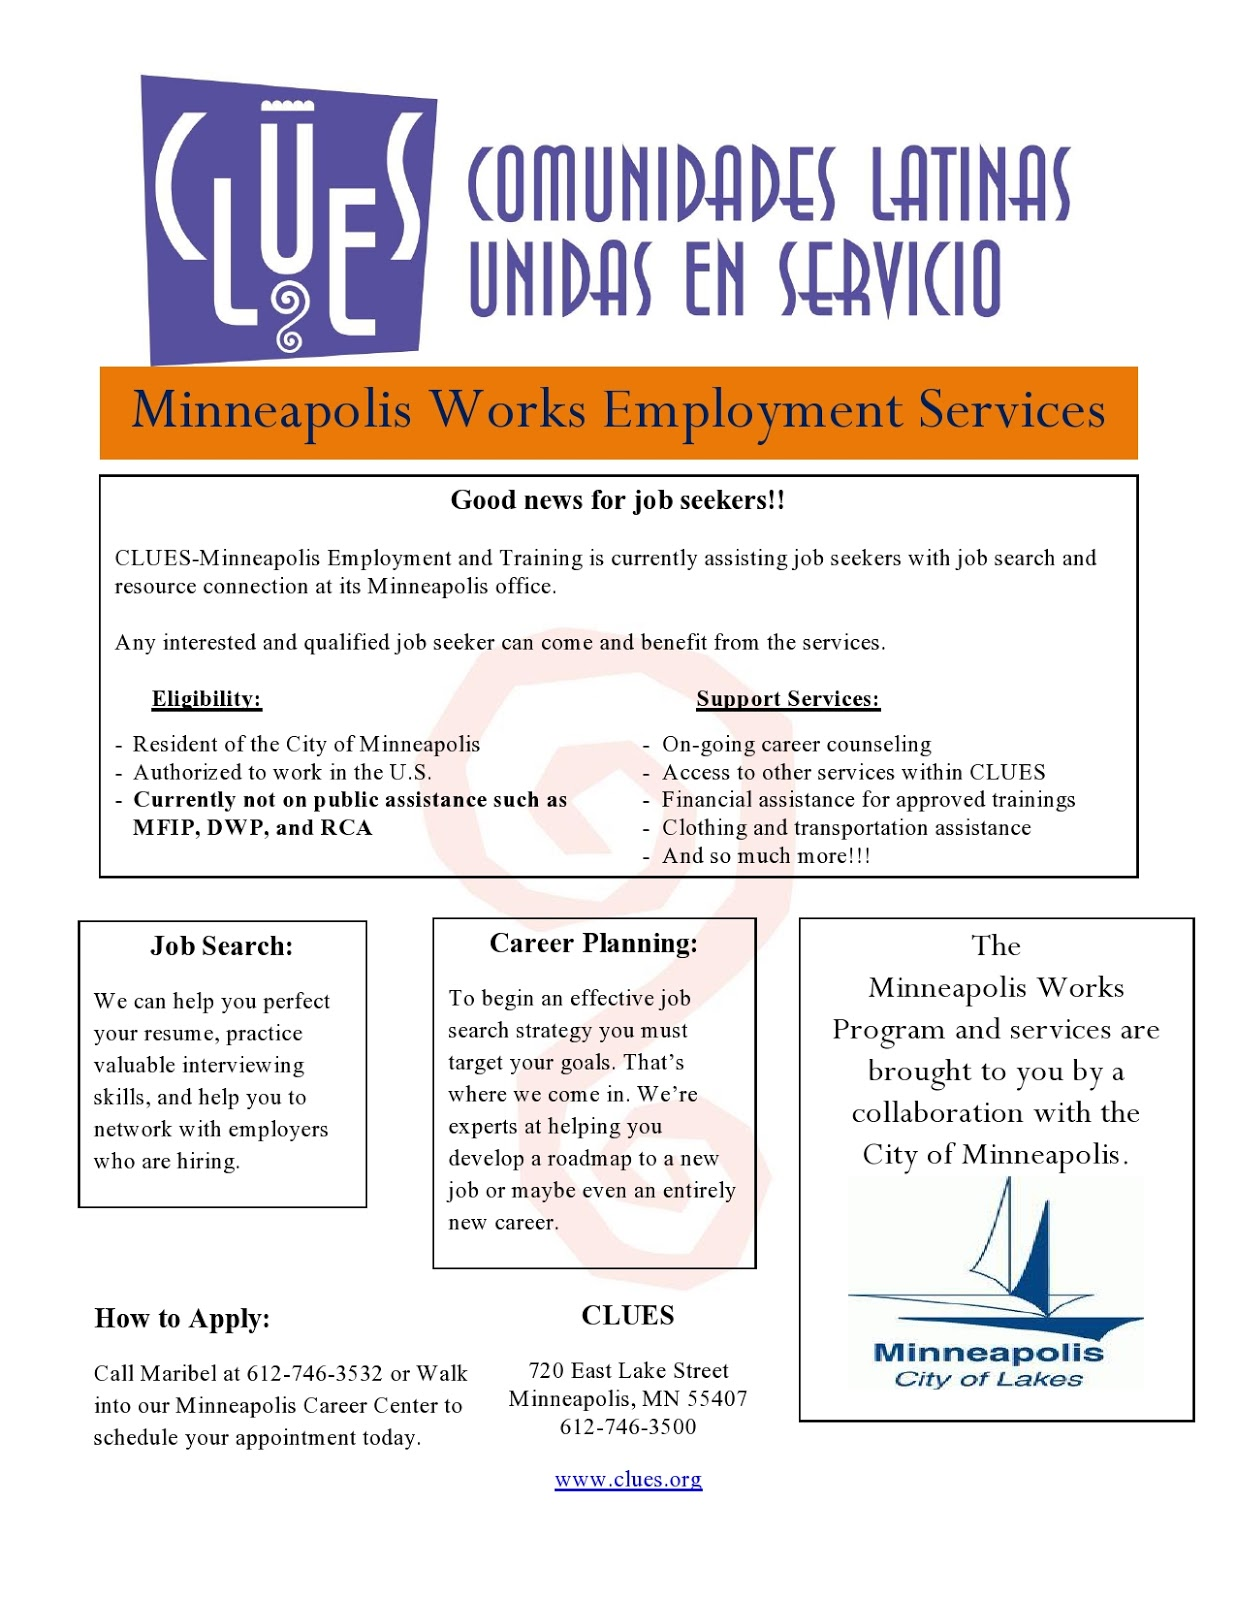 clues jobs  clues employment services and contact